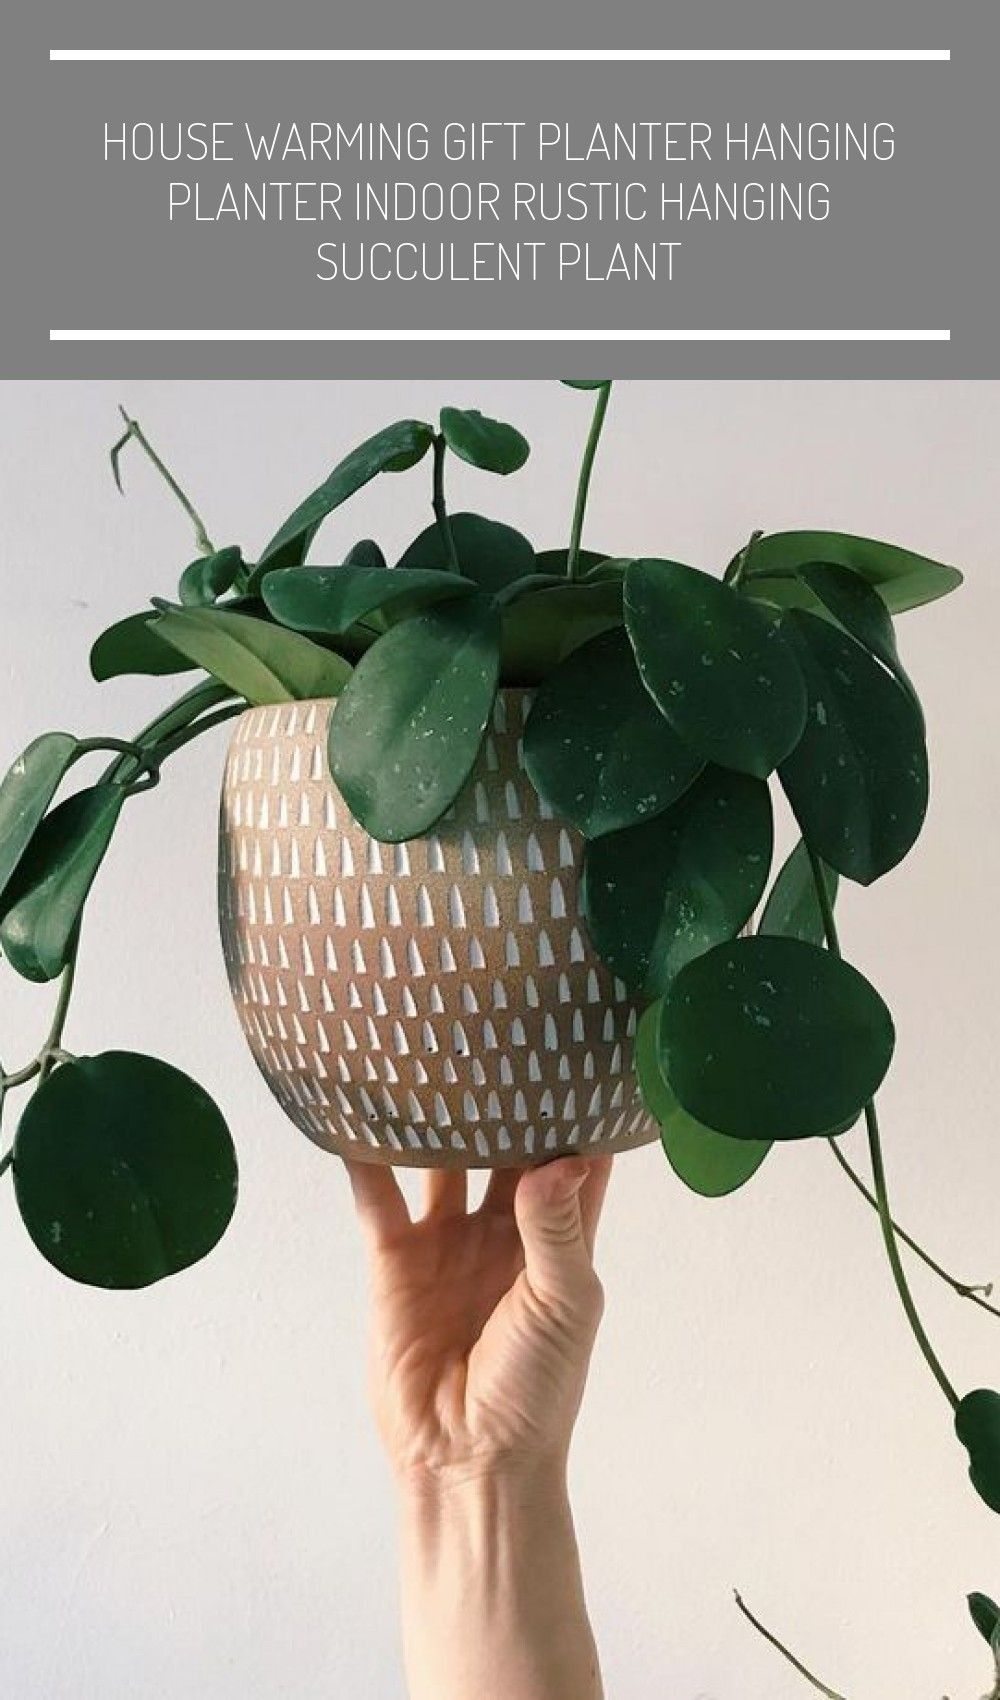 Add color and texture to your small space with living plants #xtraroom #smallspa #cactus plants houseplant #cactus plants houseplant